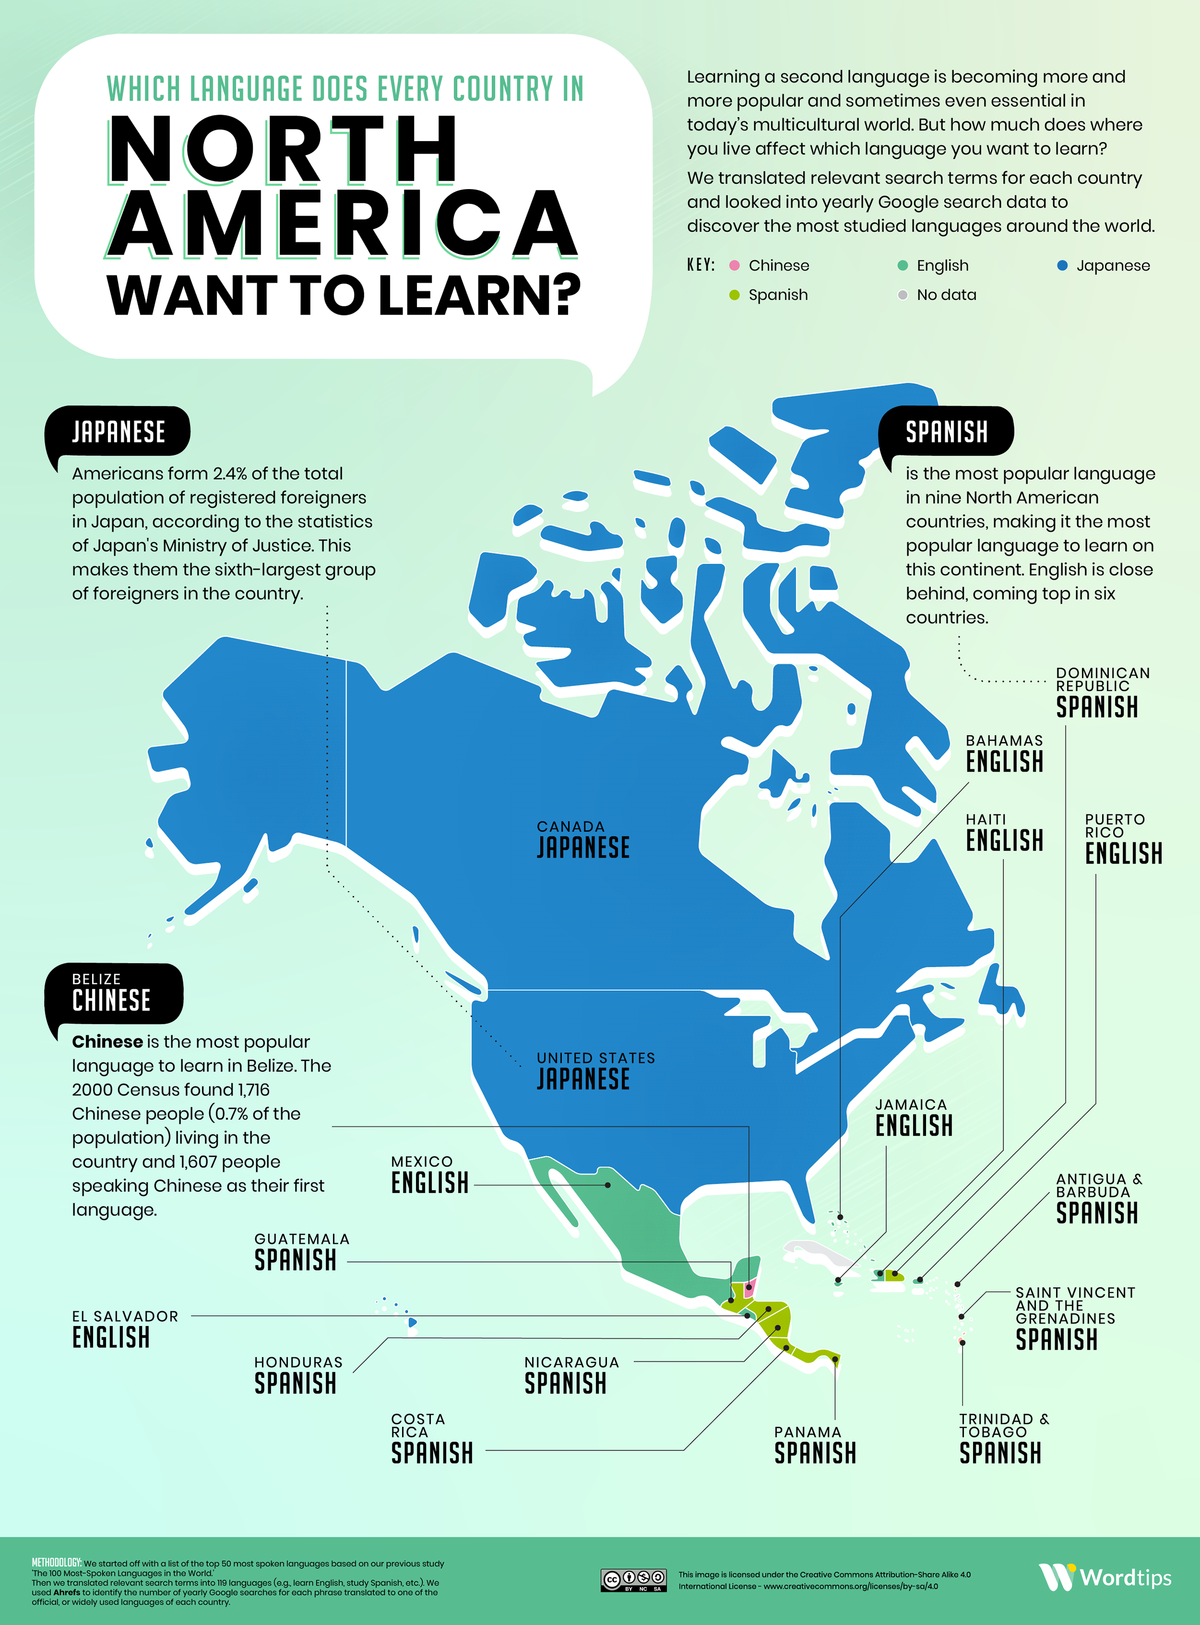 Languages North Americans Want to Learn the Most